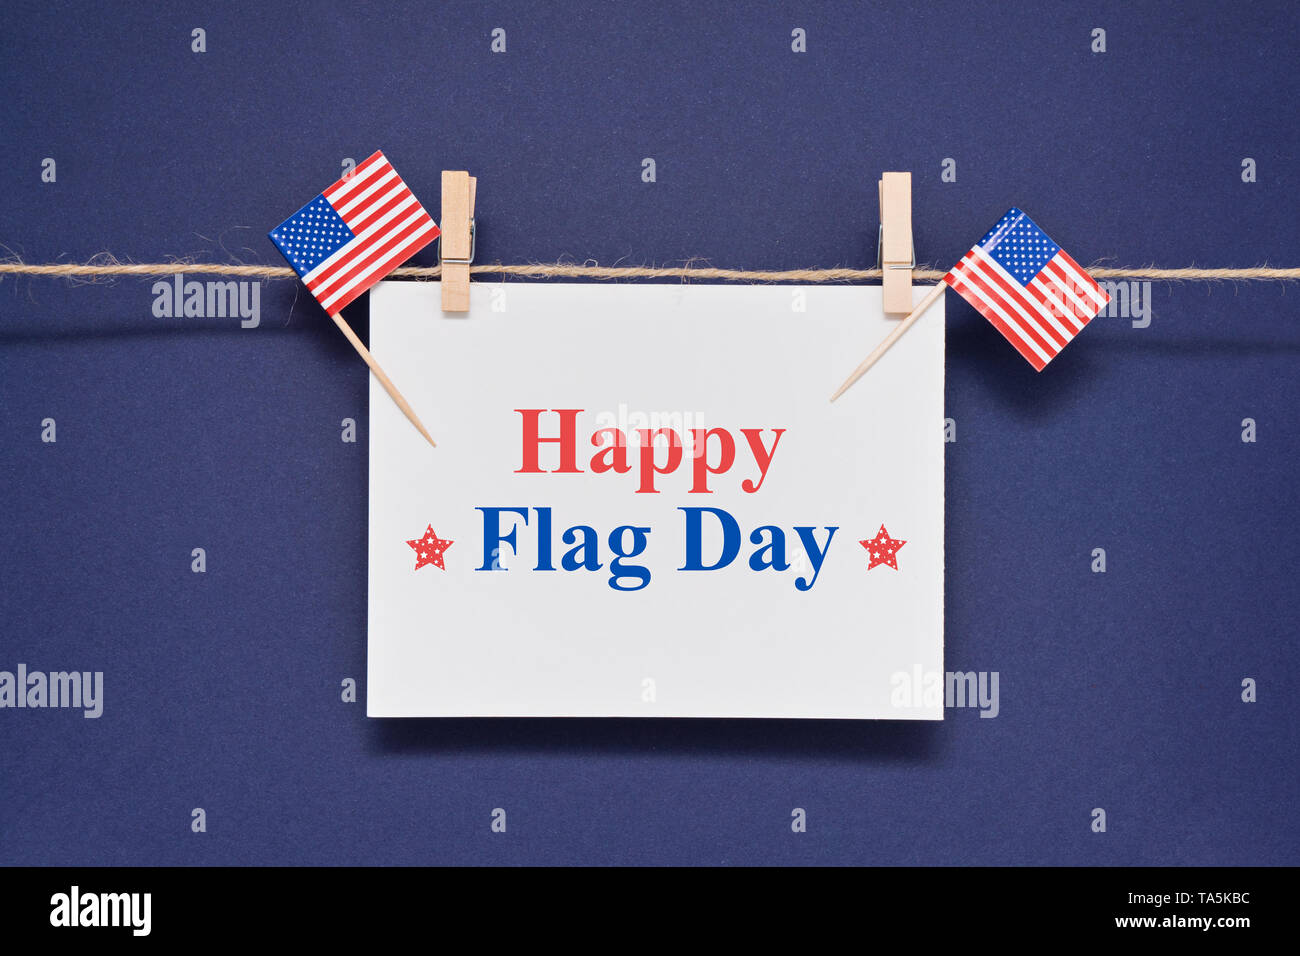 Greeting card with text Happy Flag Day for 14th June to celebrate adoption of Stars and Stripes as official flag of United States Stock Photo